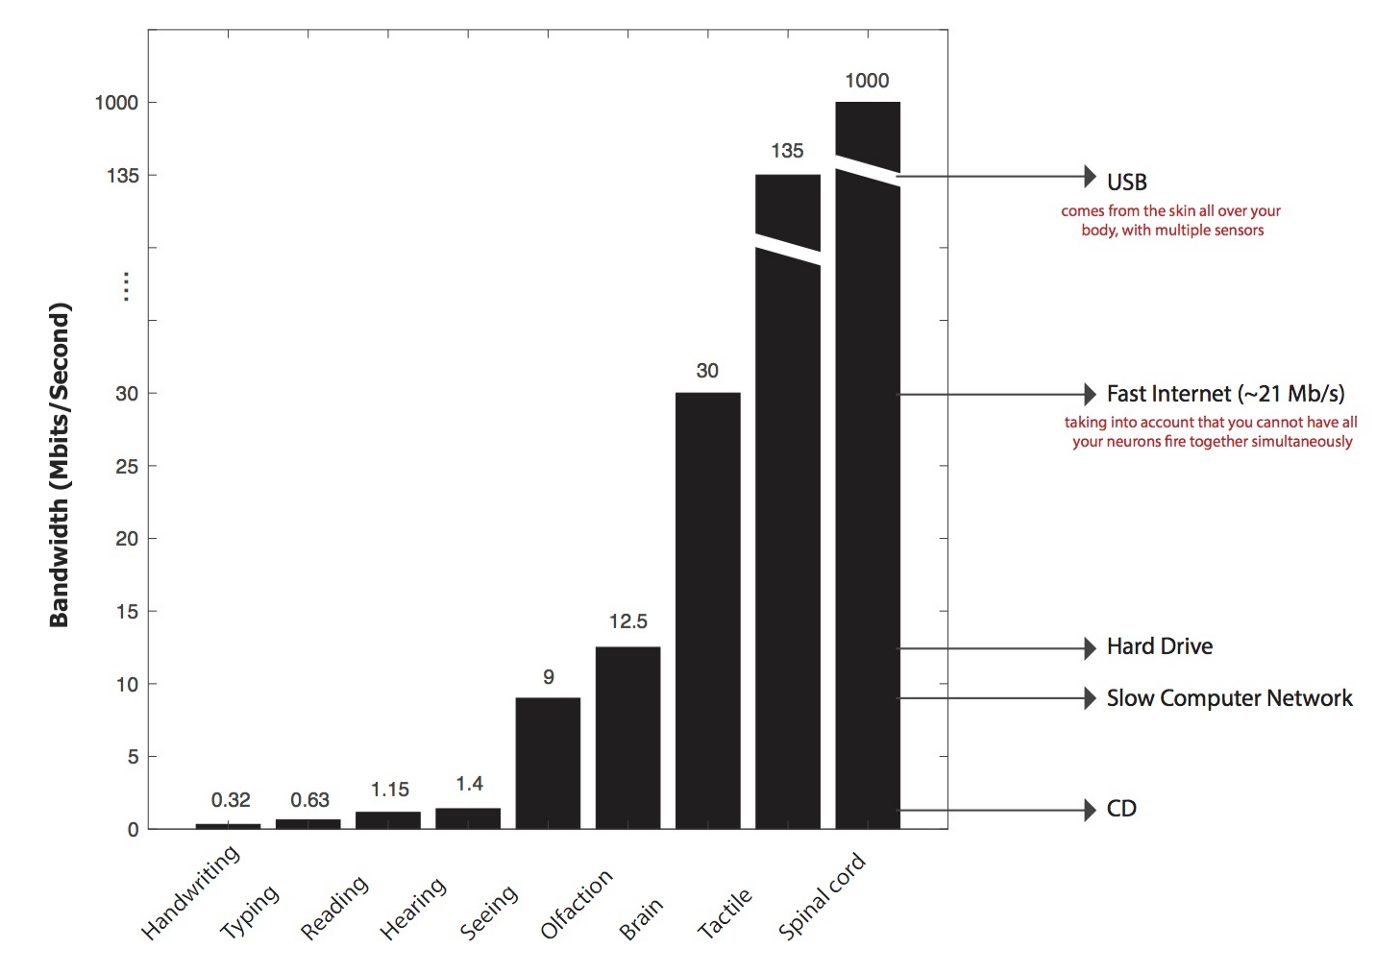 Figure 4: A bandwidth chart, comparing the speed of the nervous connectivity compared to other technologies (Screenshot, Urban, 2017)